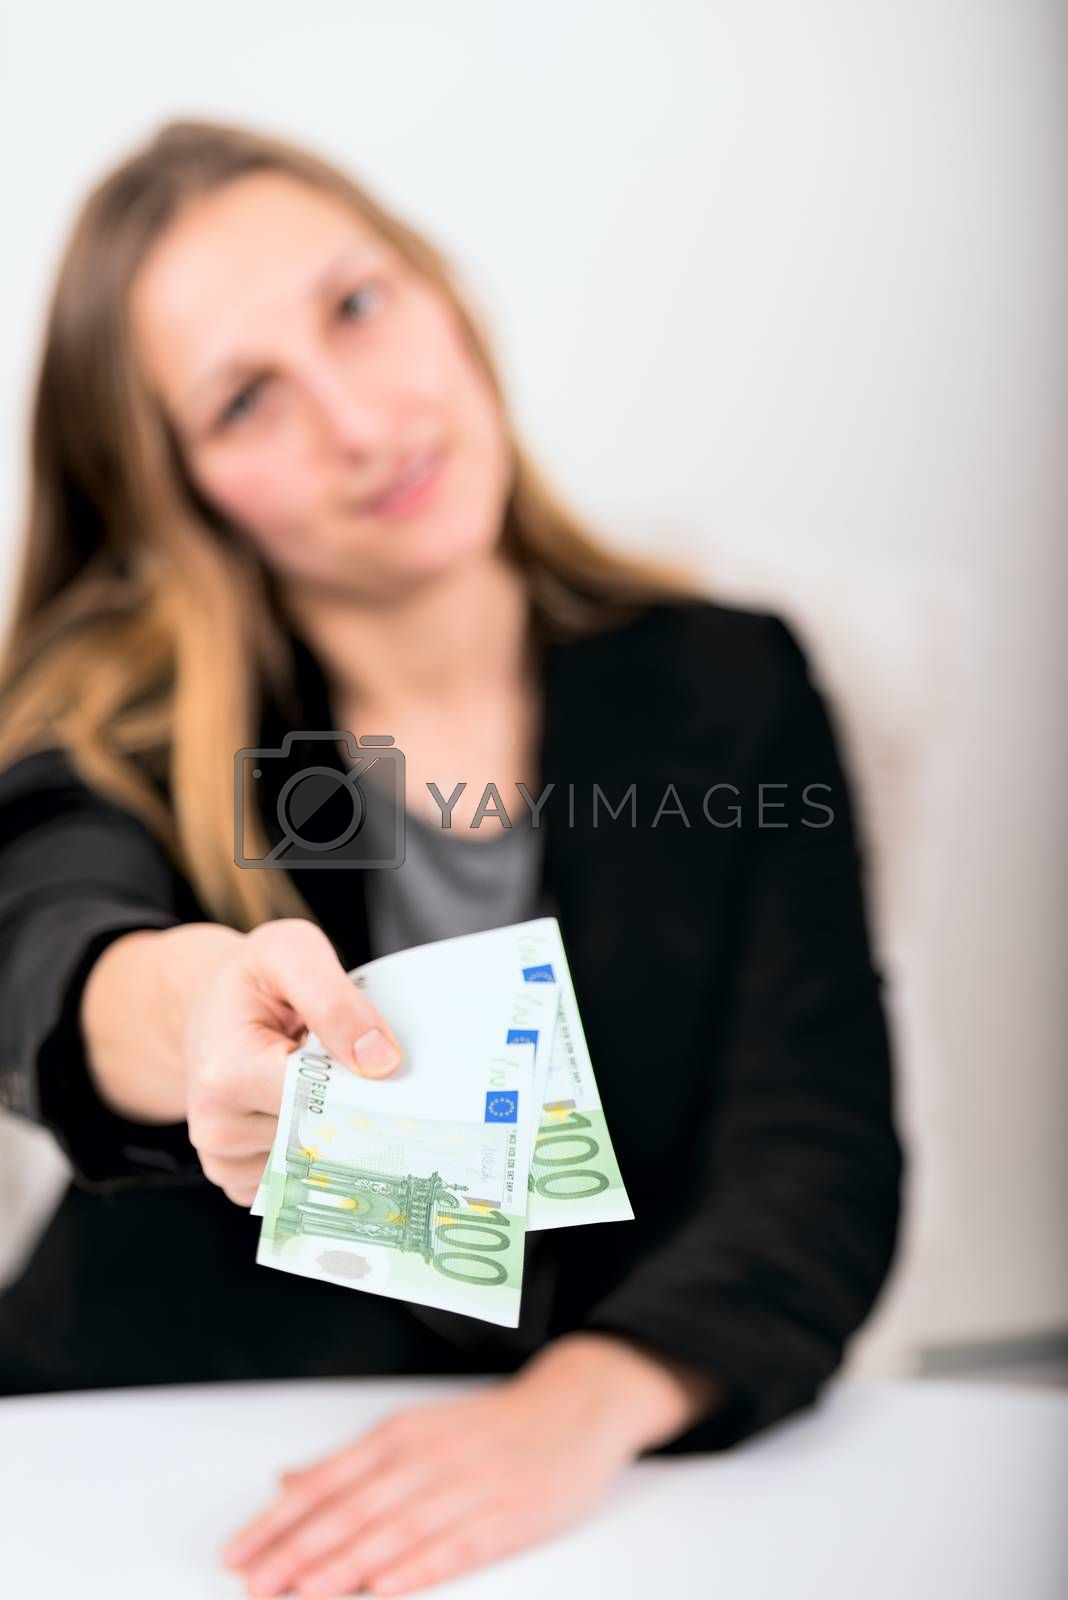 Royalty free image of young woman giving money by Nanisimova